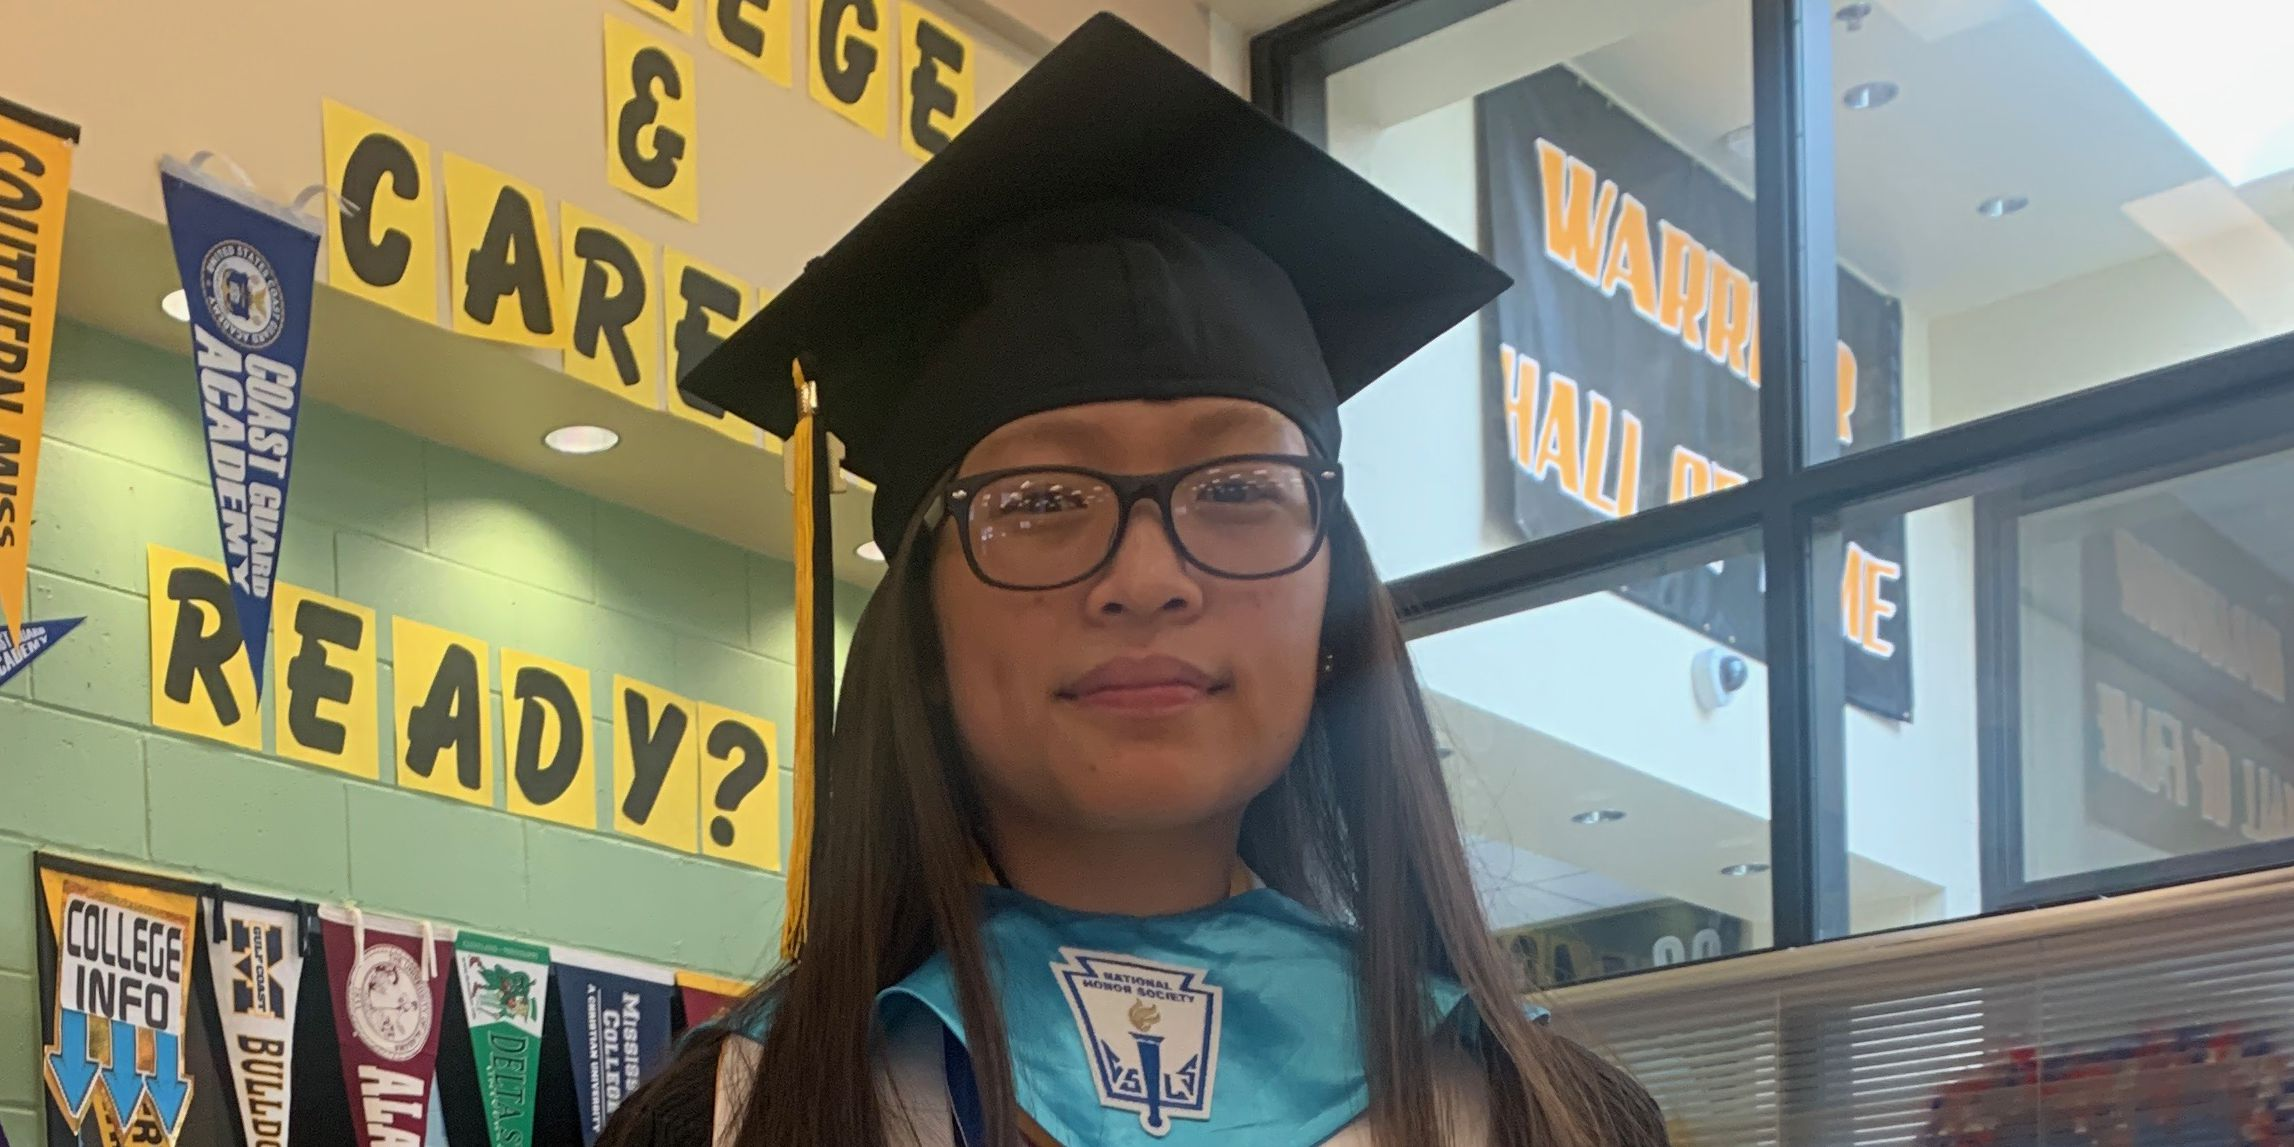 D'Iberville student graduates second in class 8 years after parents' tragic death